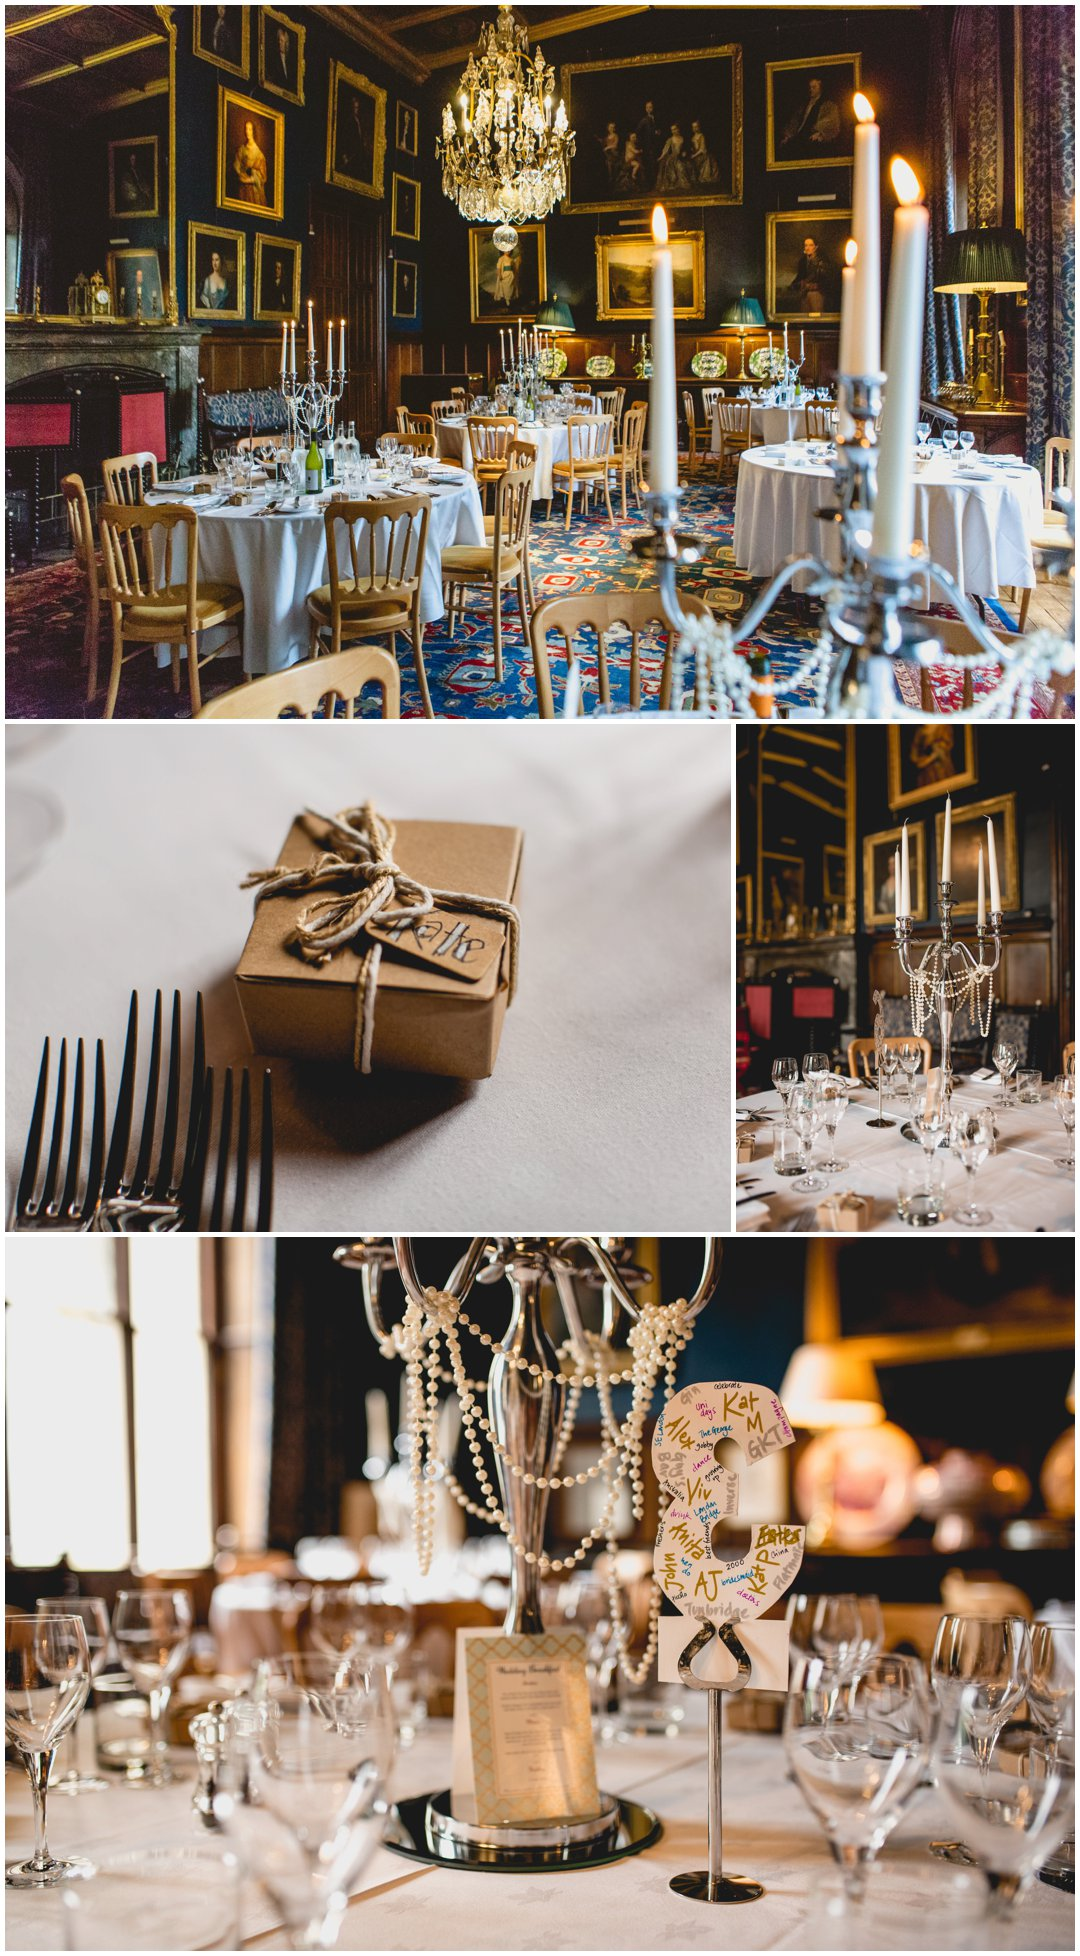 Eastnor Castle Wedding photos by West Midlands Wedding Photographer Lisa Carpenter Photography, shooting elegant, alternative, cool weddings in The West Midlands and the UK.